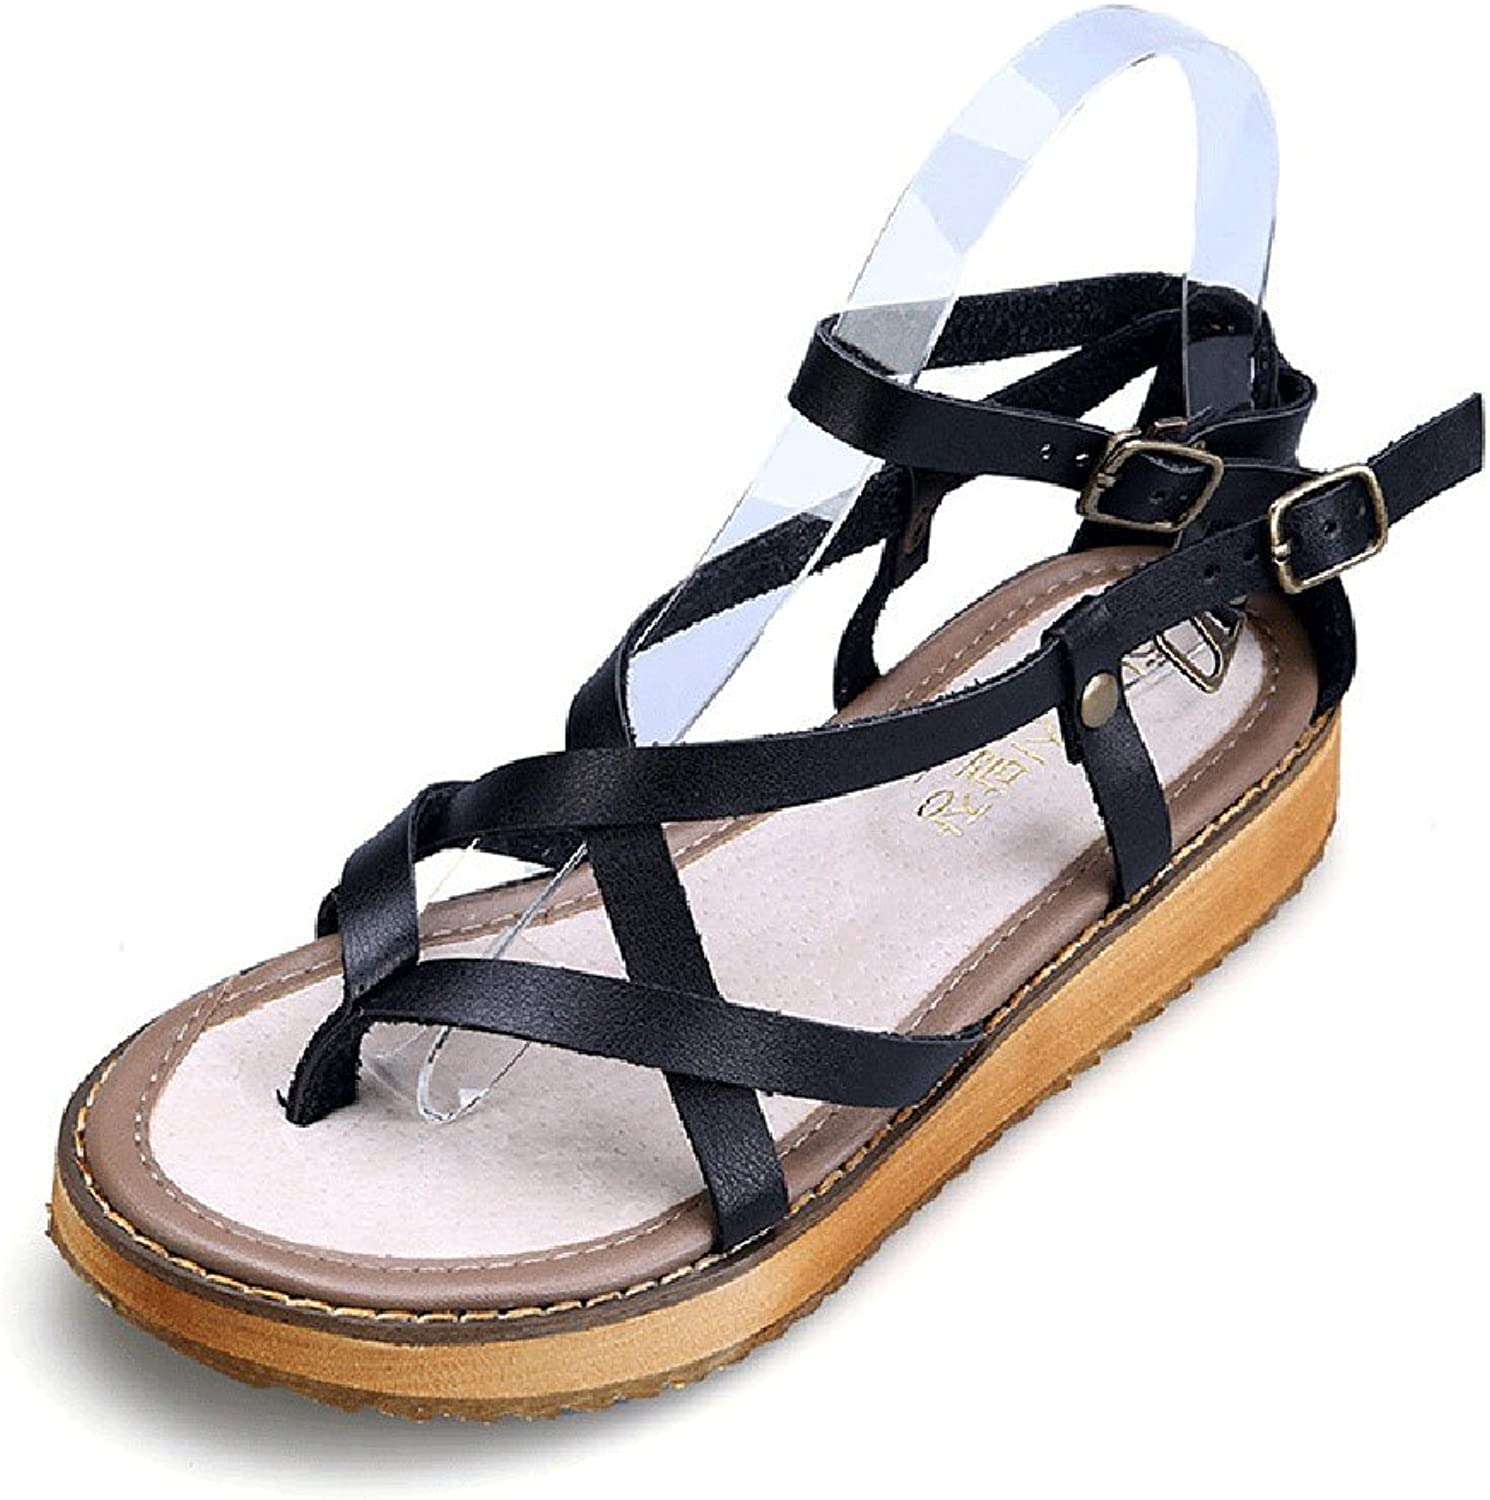 Fuoks Leather Summer Outdoor Flat Sandles Women's Sandals